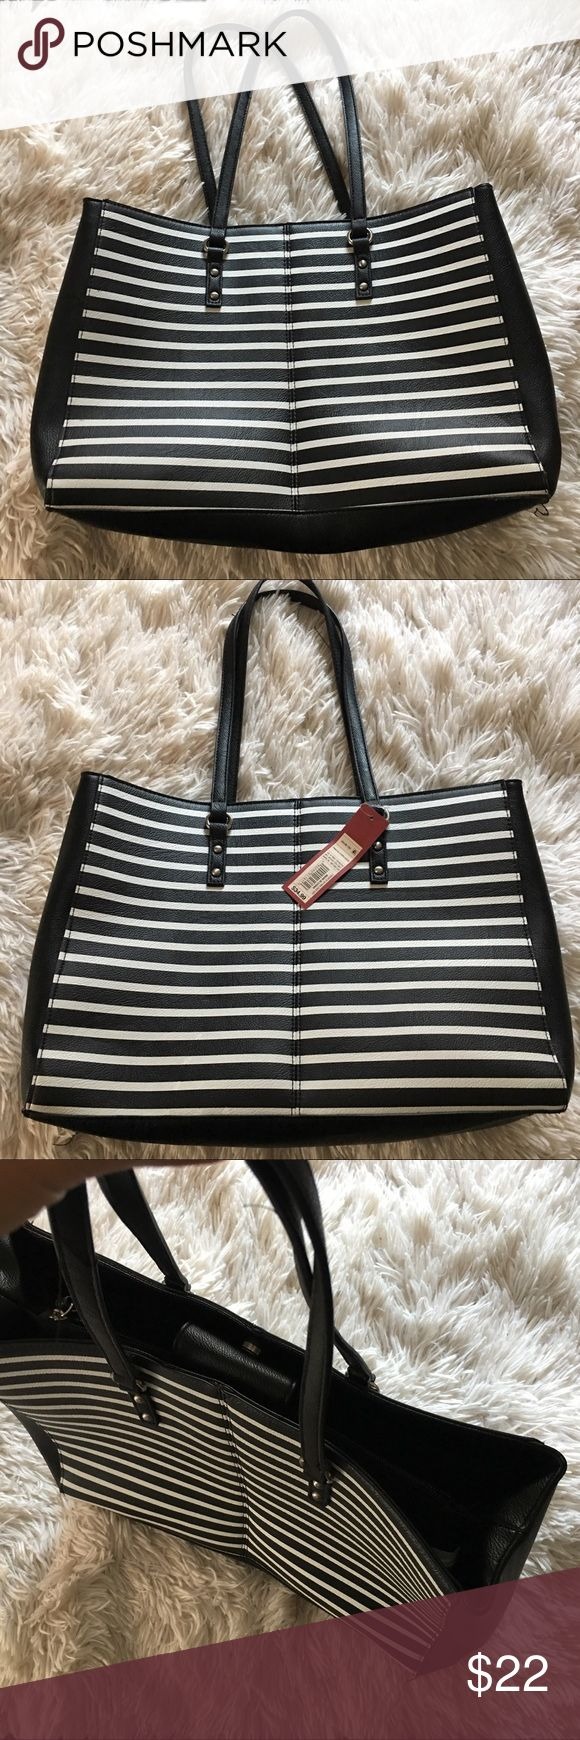 Printed Stripe Faux Leather Shoulder Bag Merona Faux Leather Printed Striped Shoulder Bag with three different compartments inside and two zipper closure pockets. Very spacious Bag useful for the organized! Has silver accents on the straps. No Trades! Speedy shipping! Happy Poshinggg🌸🌸🌸🌸 Merona Bags Shoulder Bags